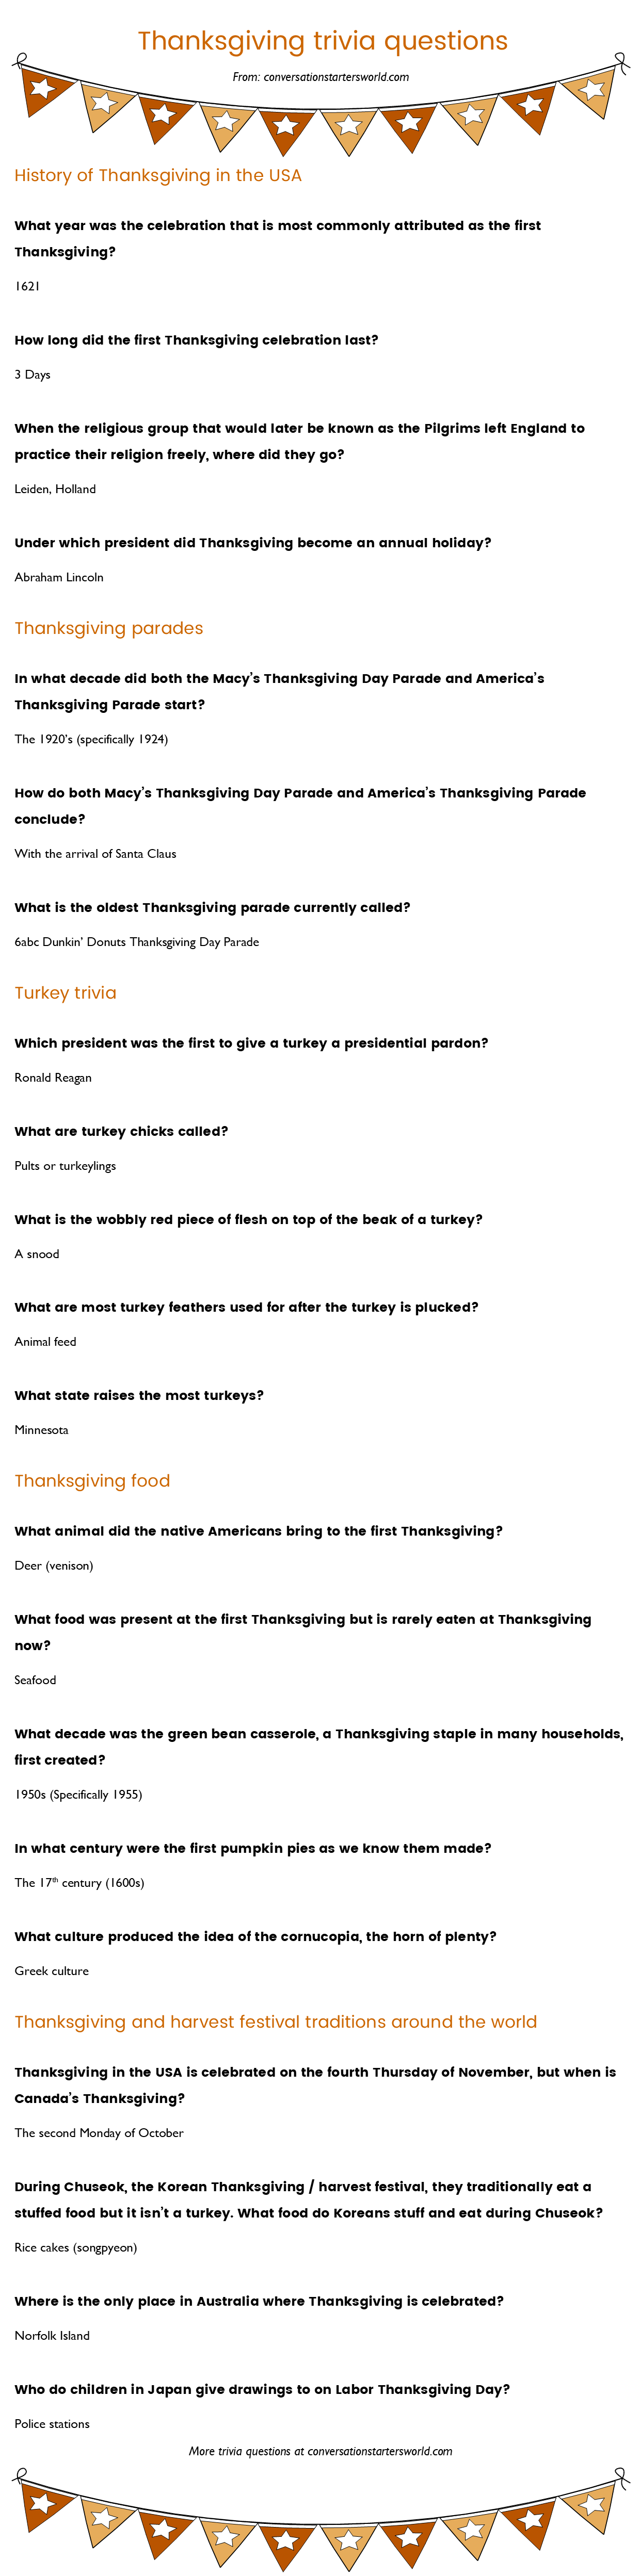 photo regarding American History Trivia Questions and Answers Printable identify 21 Thanksgiving trivia inquiries optimum men and women dont understand the